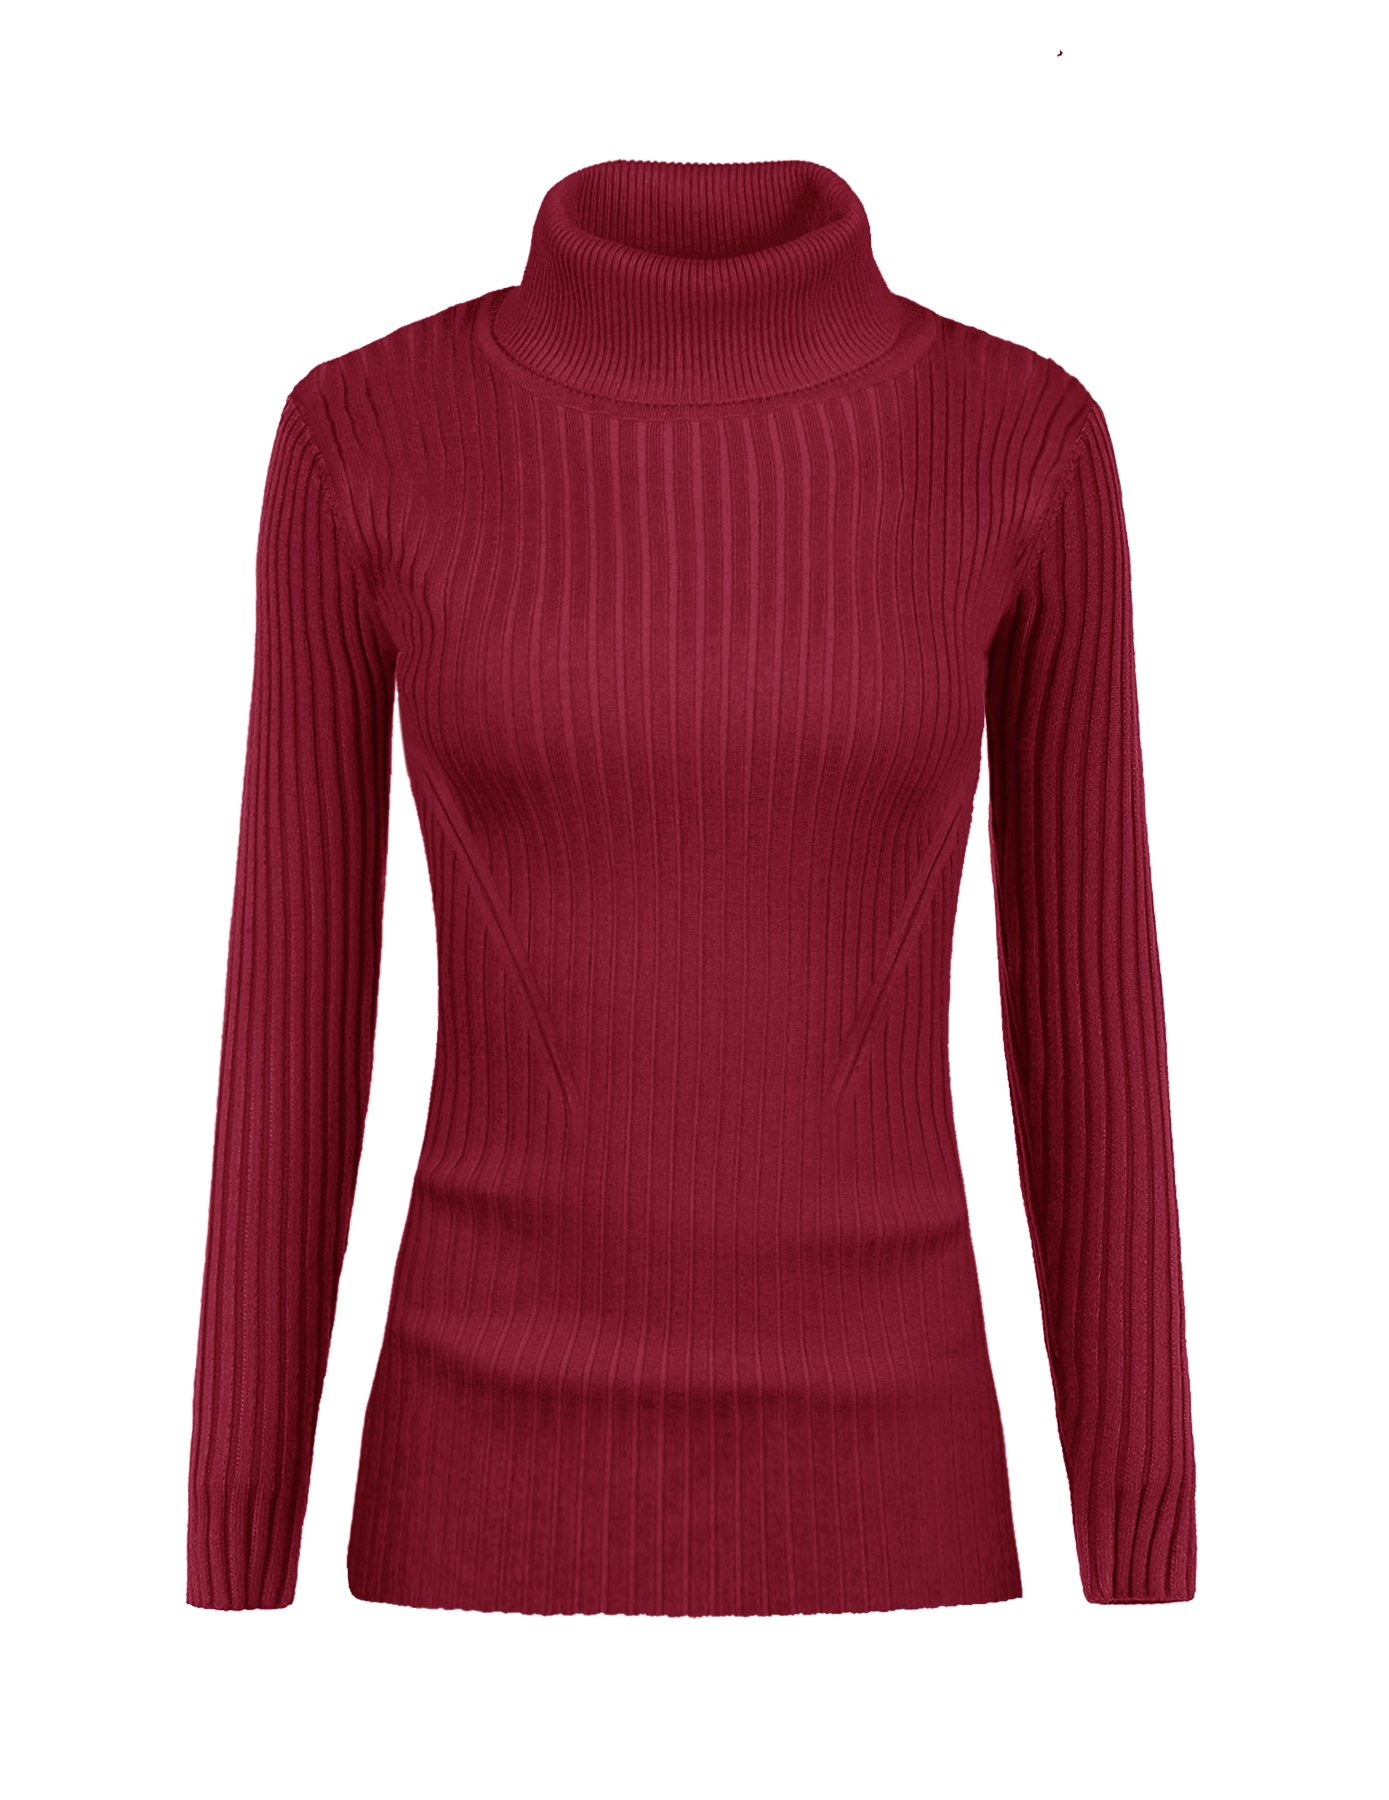 v28 Women Stretchable Turtleneck Knit Long Sleeve Slim Fit Bodycon Sweater (M,Turtburgundy)